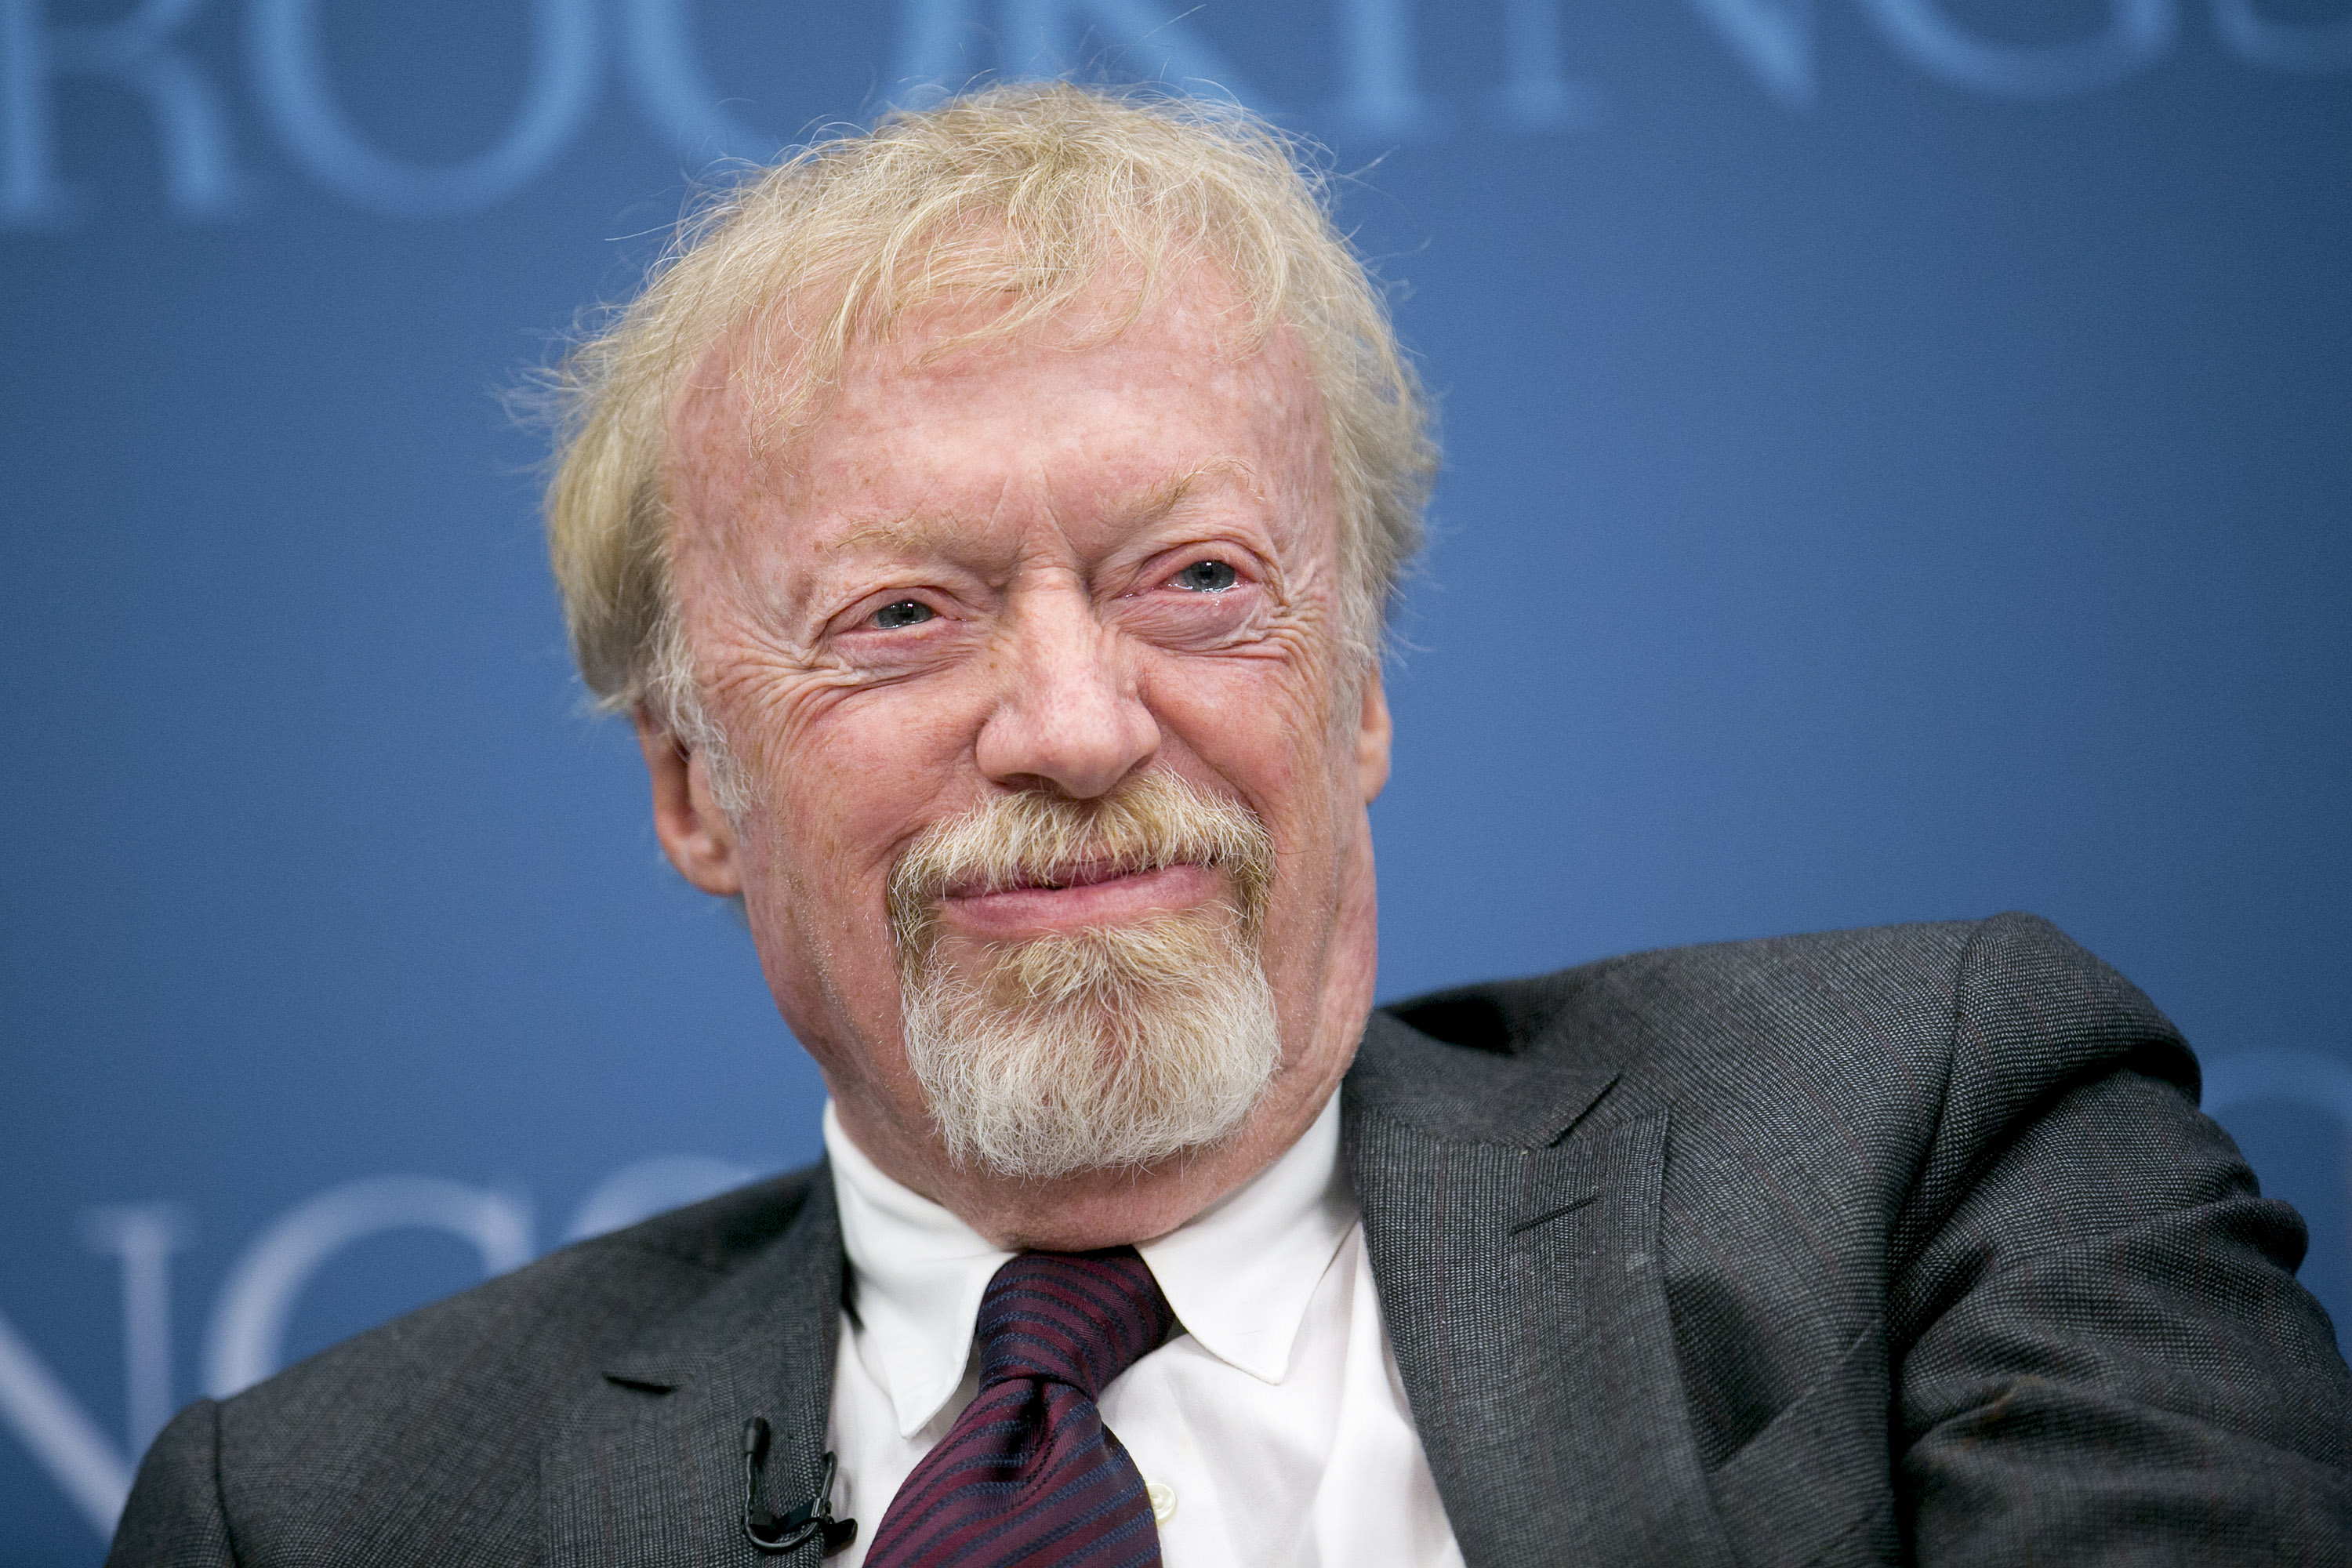 Phil Knight attends a panel discussion at the Brookings Institution in Washington, D.C., on Jan. 15, 2013.